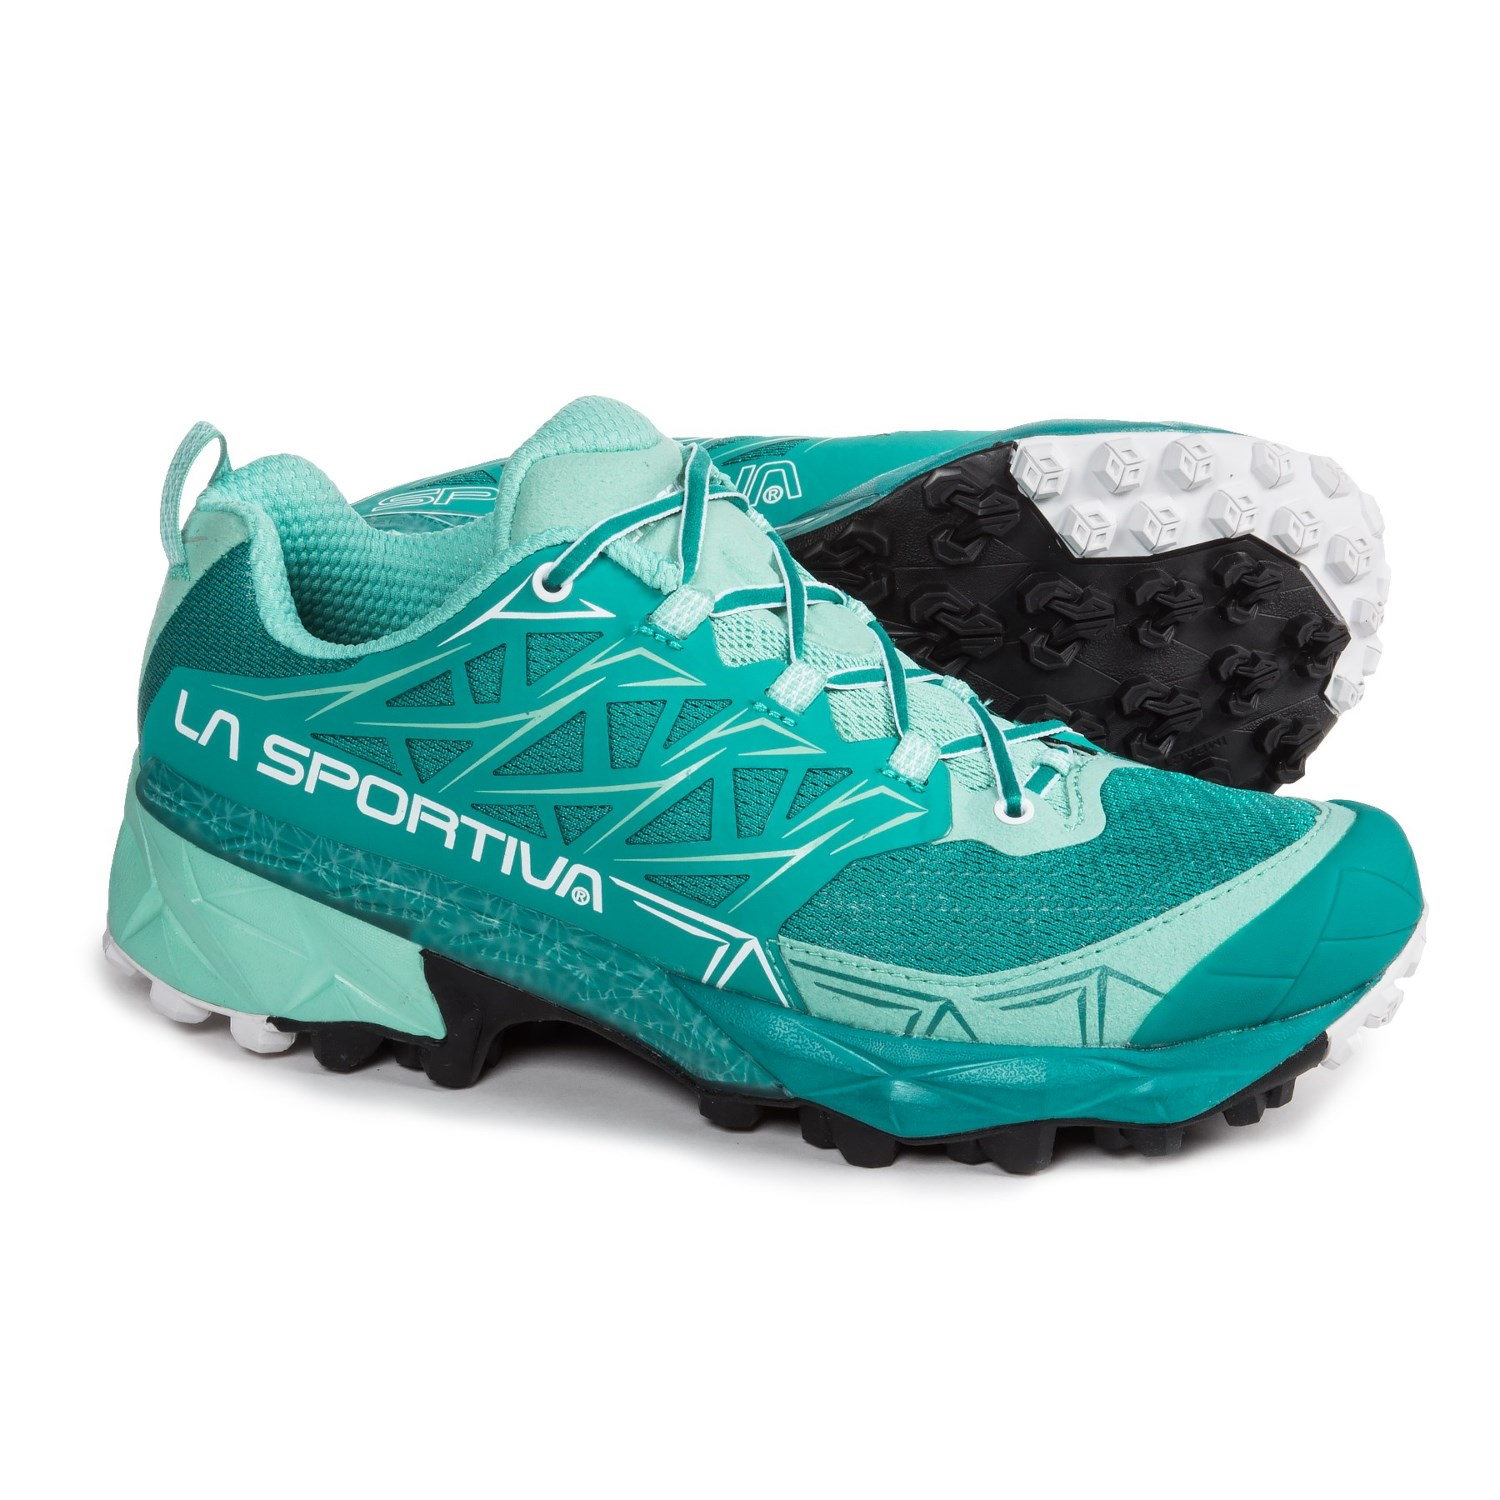 La Sportiva Akyra Trail Running Shoes (For Women) - Save 57%